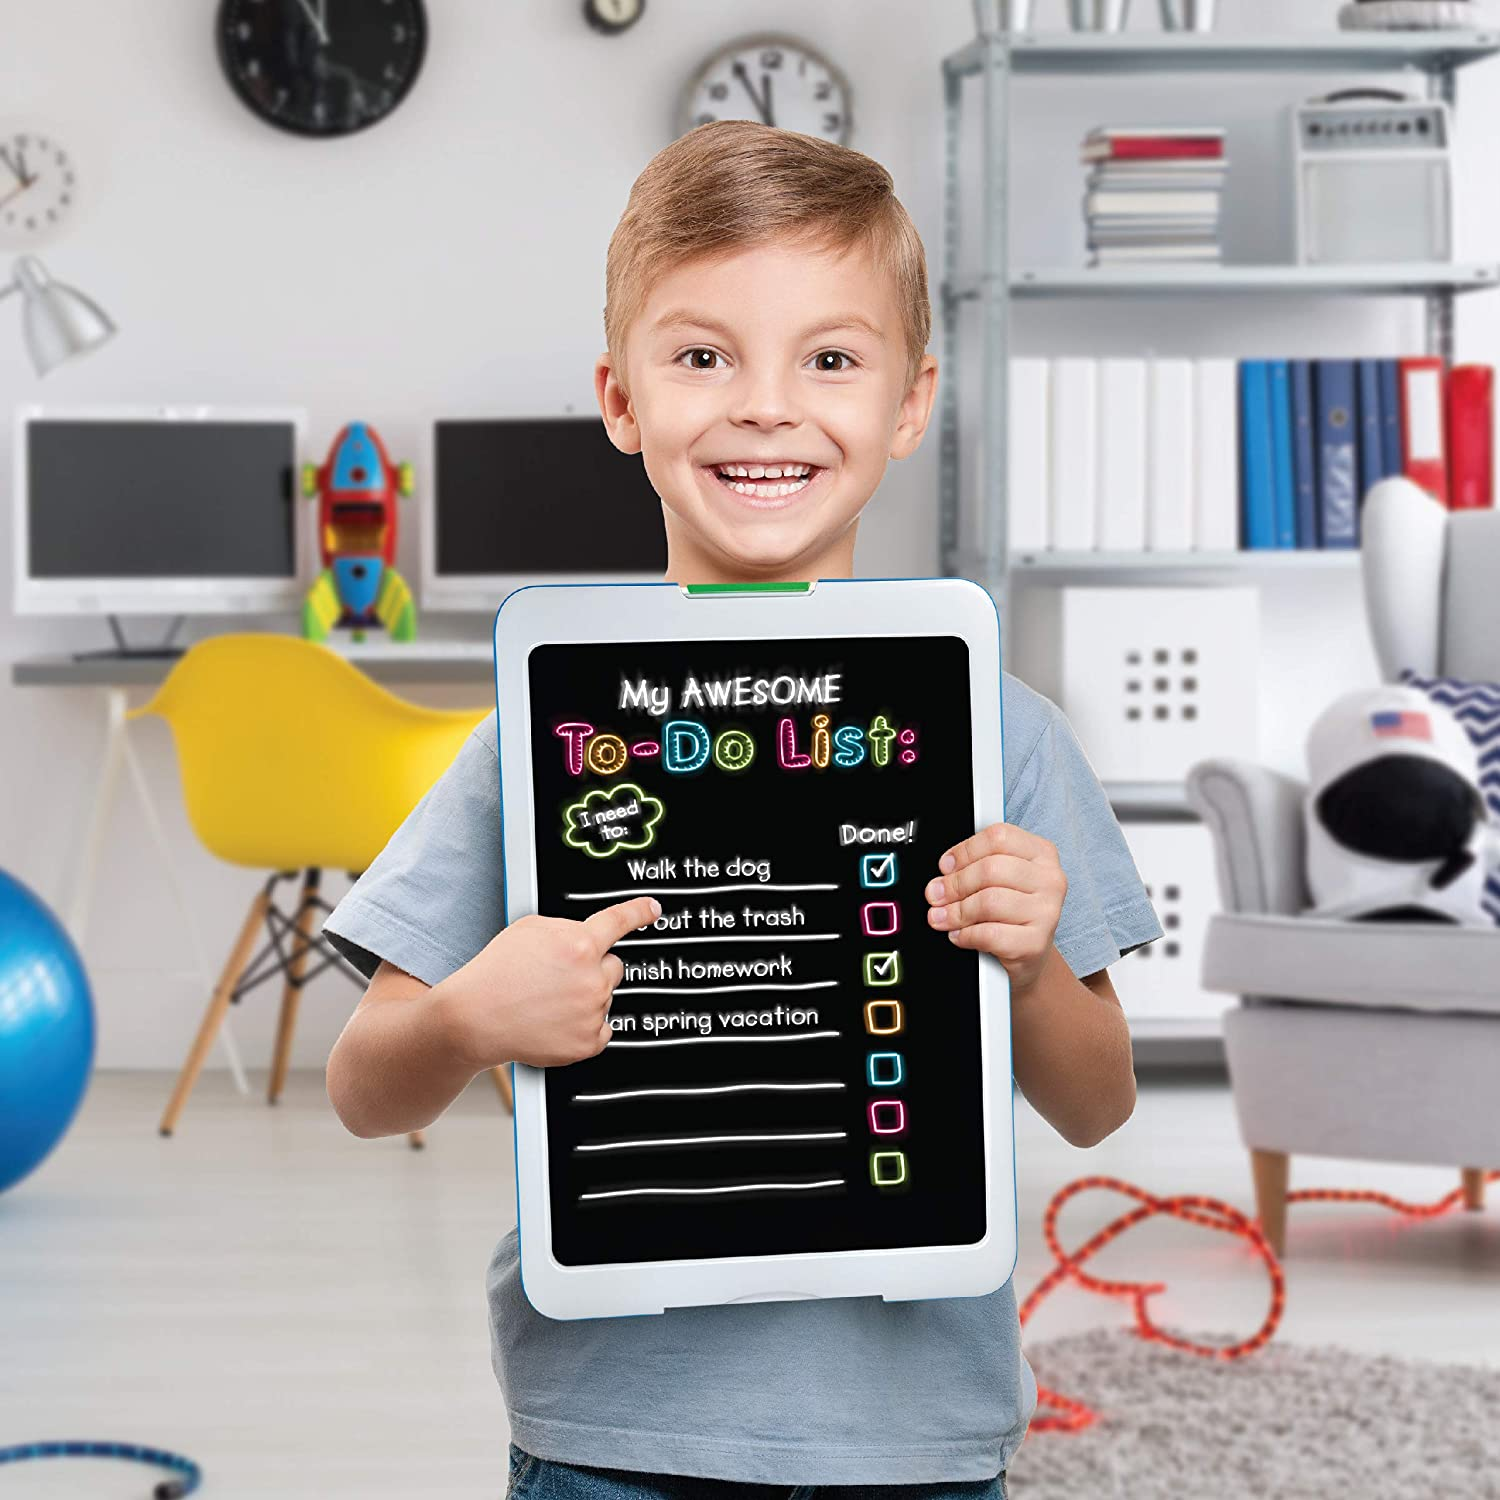 Discovery Kids Neon Glow Drawing Easel with Color Markers and 6 Light Modes